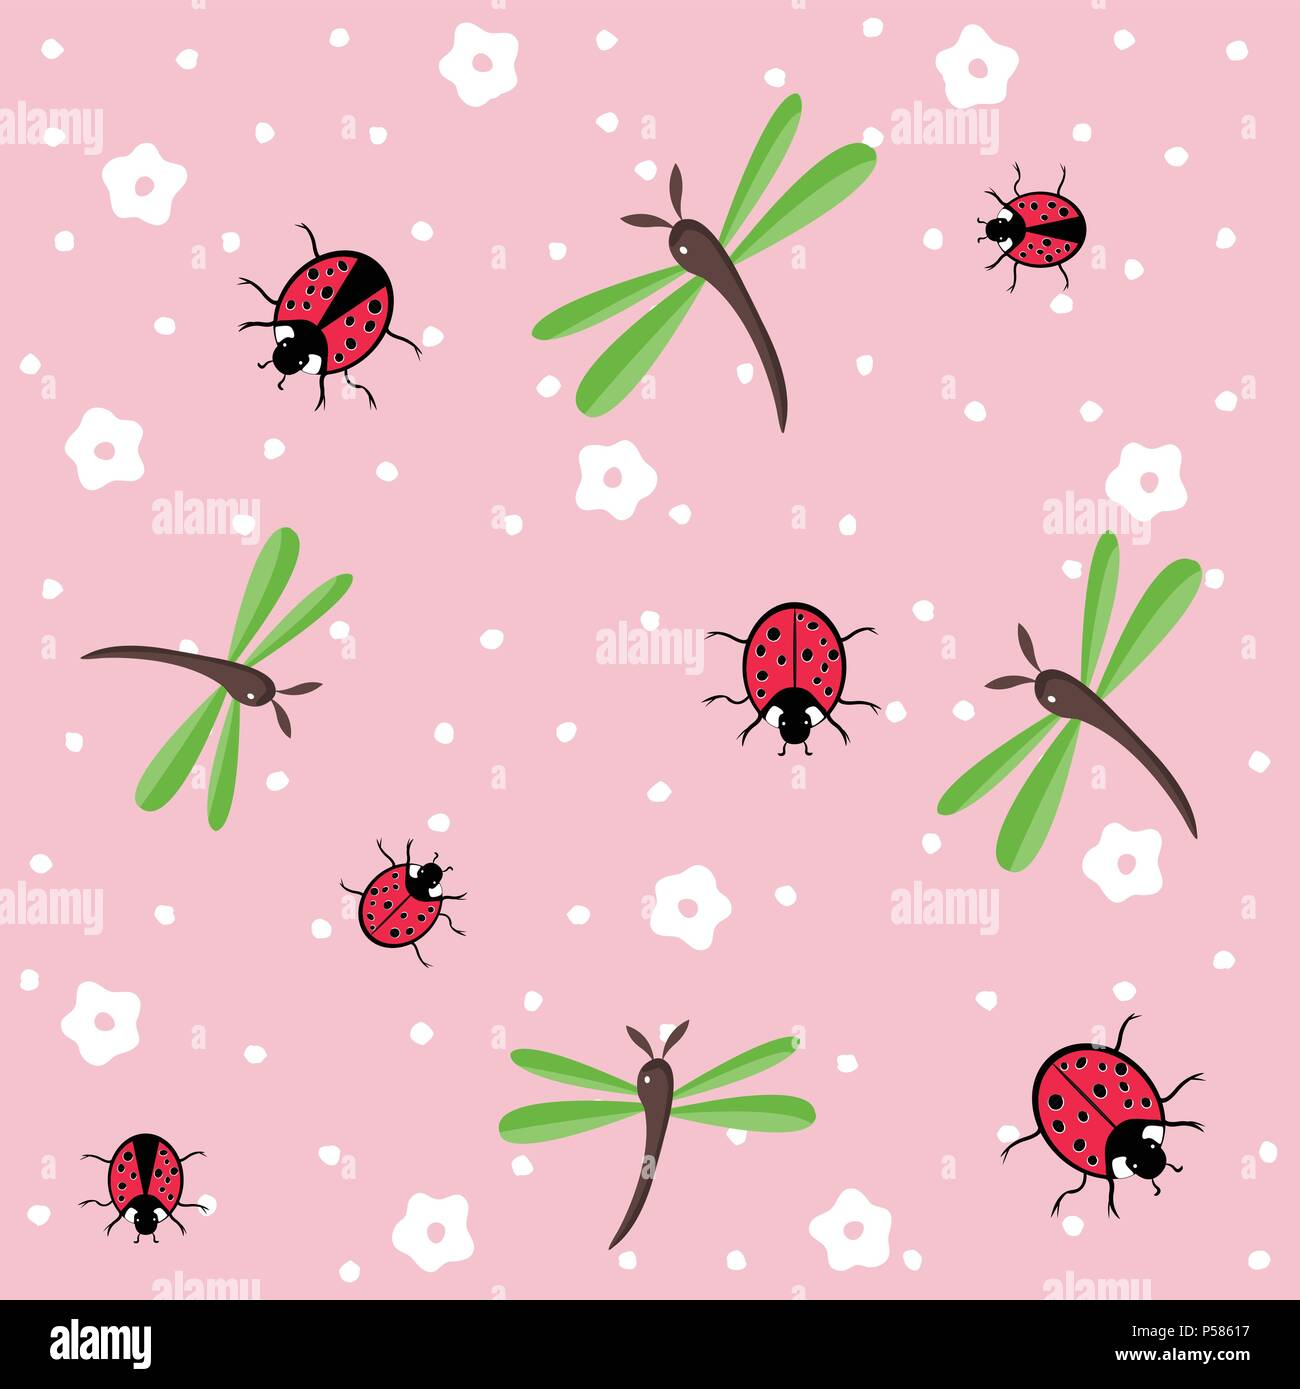 dragonflies and ladybugs seamless floral pattern - Stock Vector